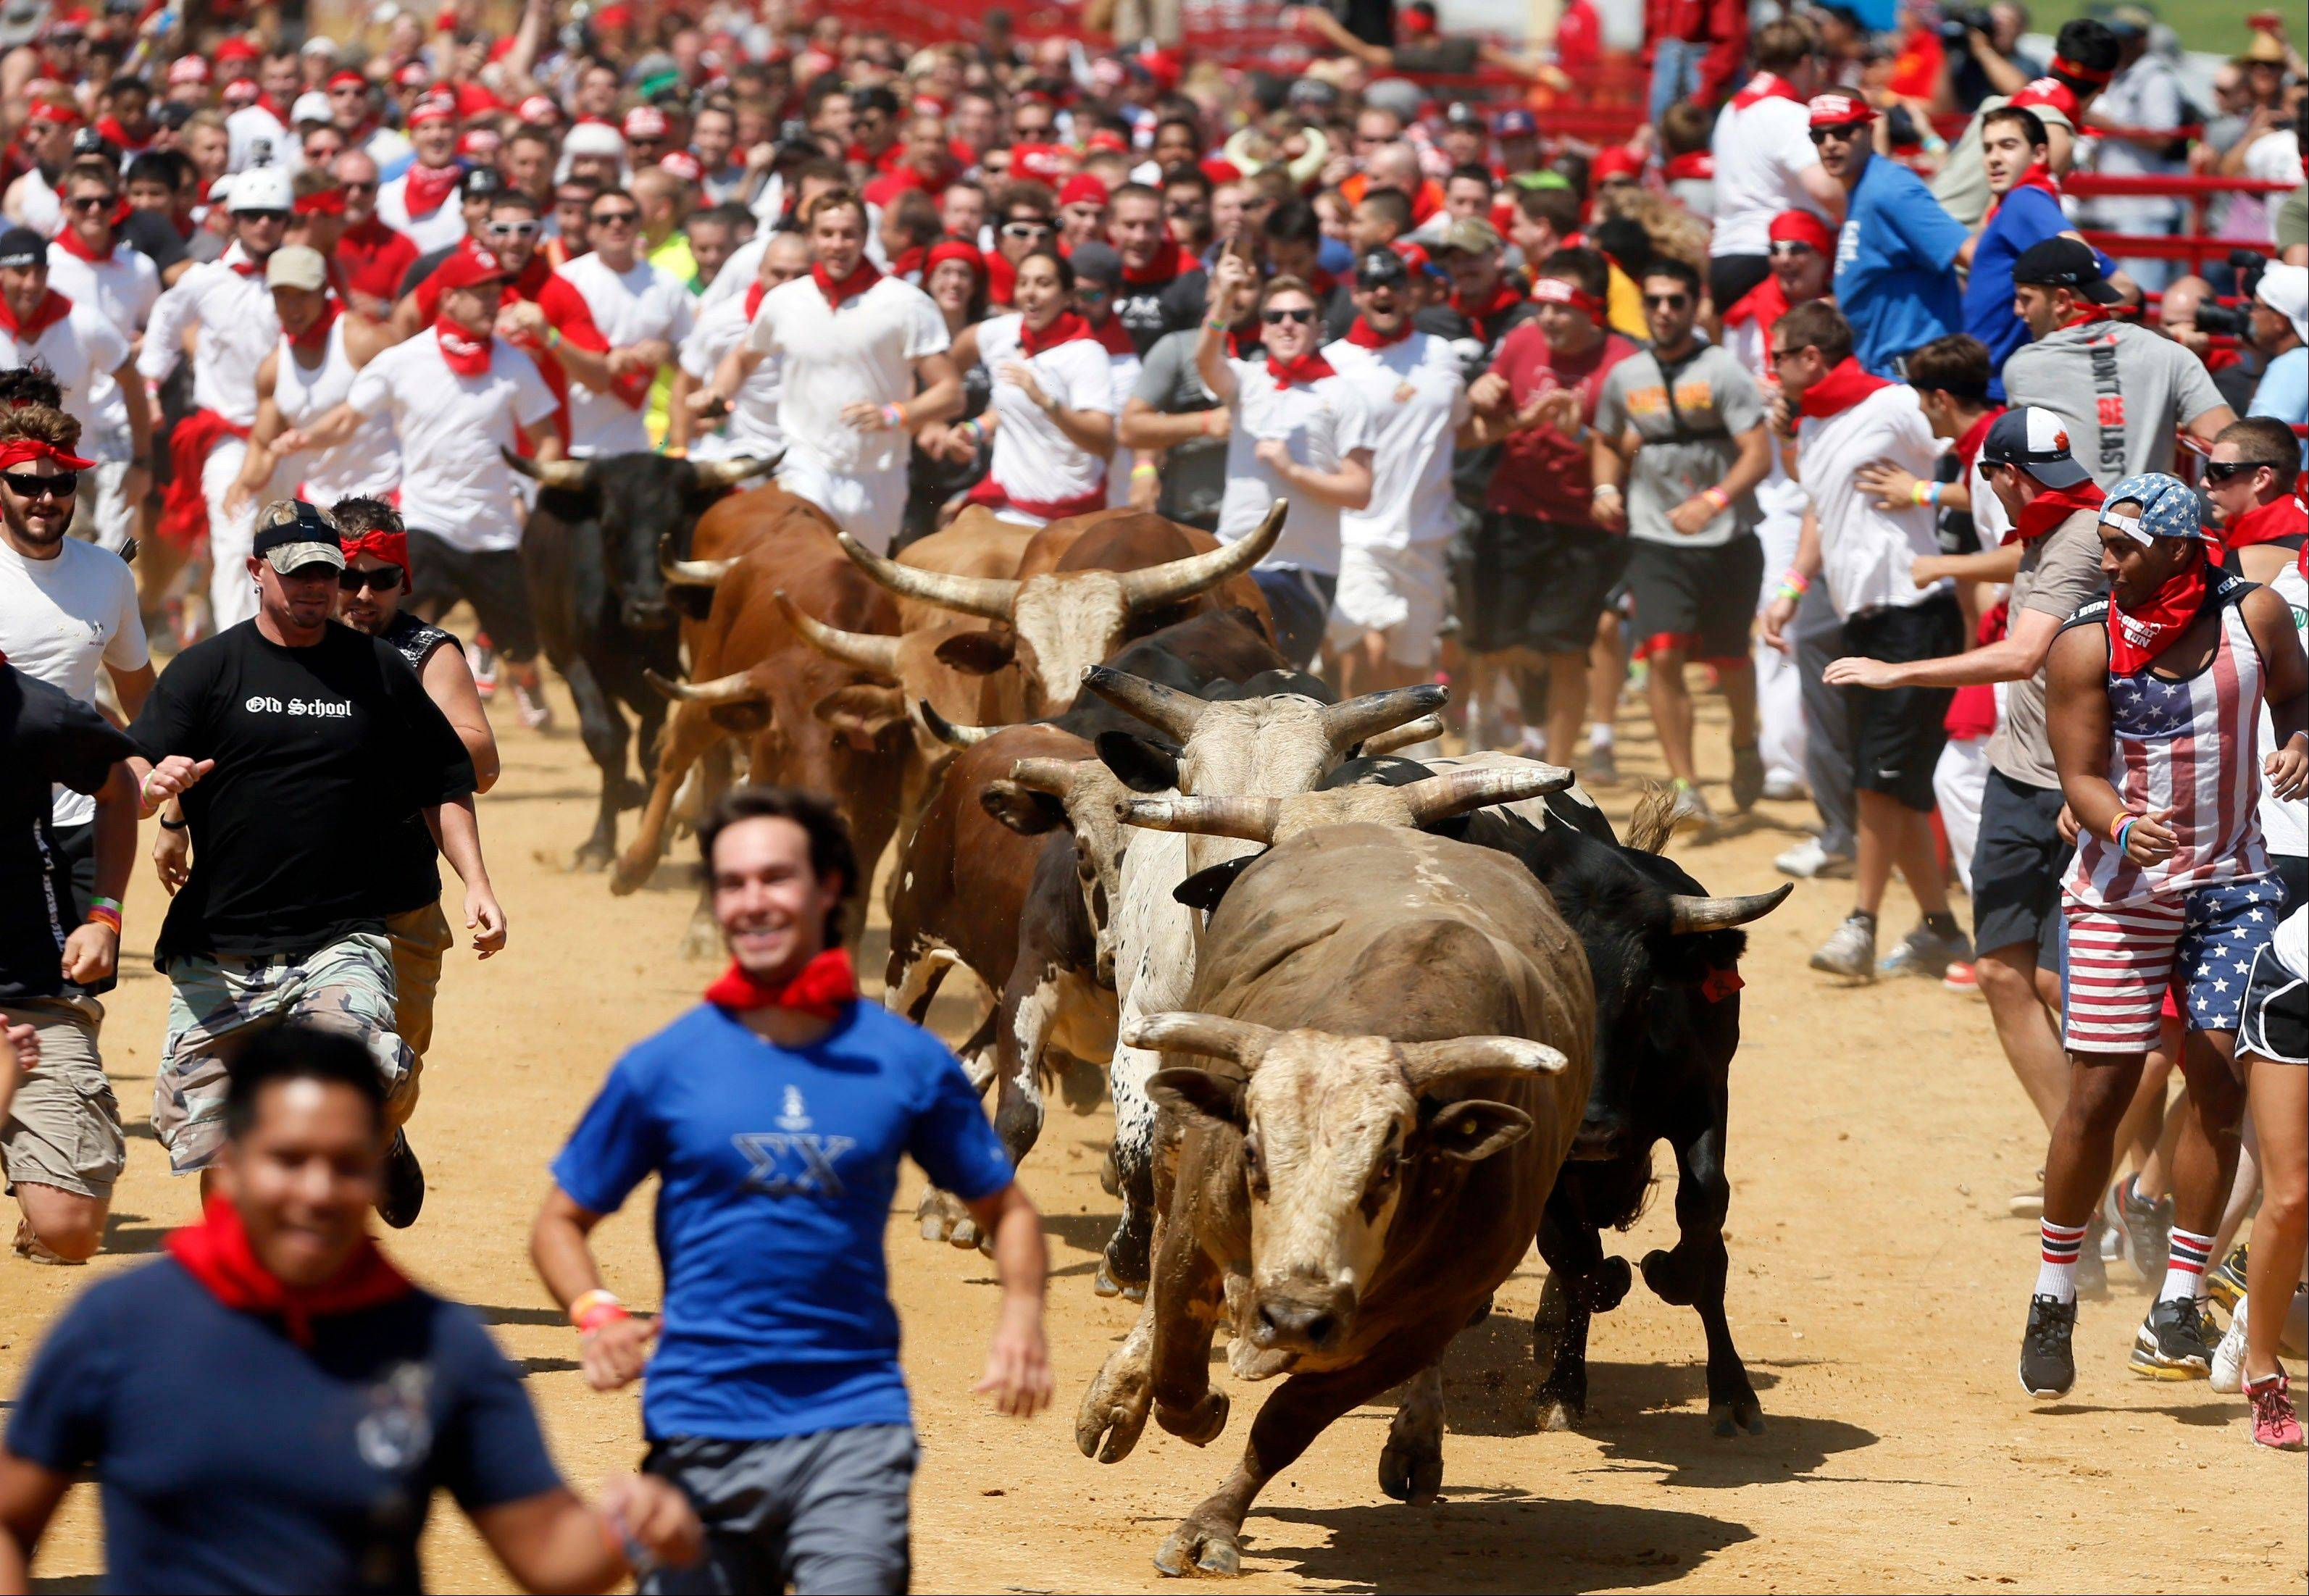 Runners clear out in front of the bulls Saturday during The Great Bull Run event at the Virginia Motorsports Park in Dinwiddie, Va.